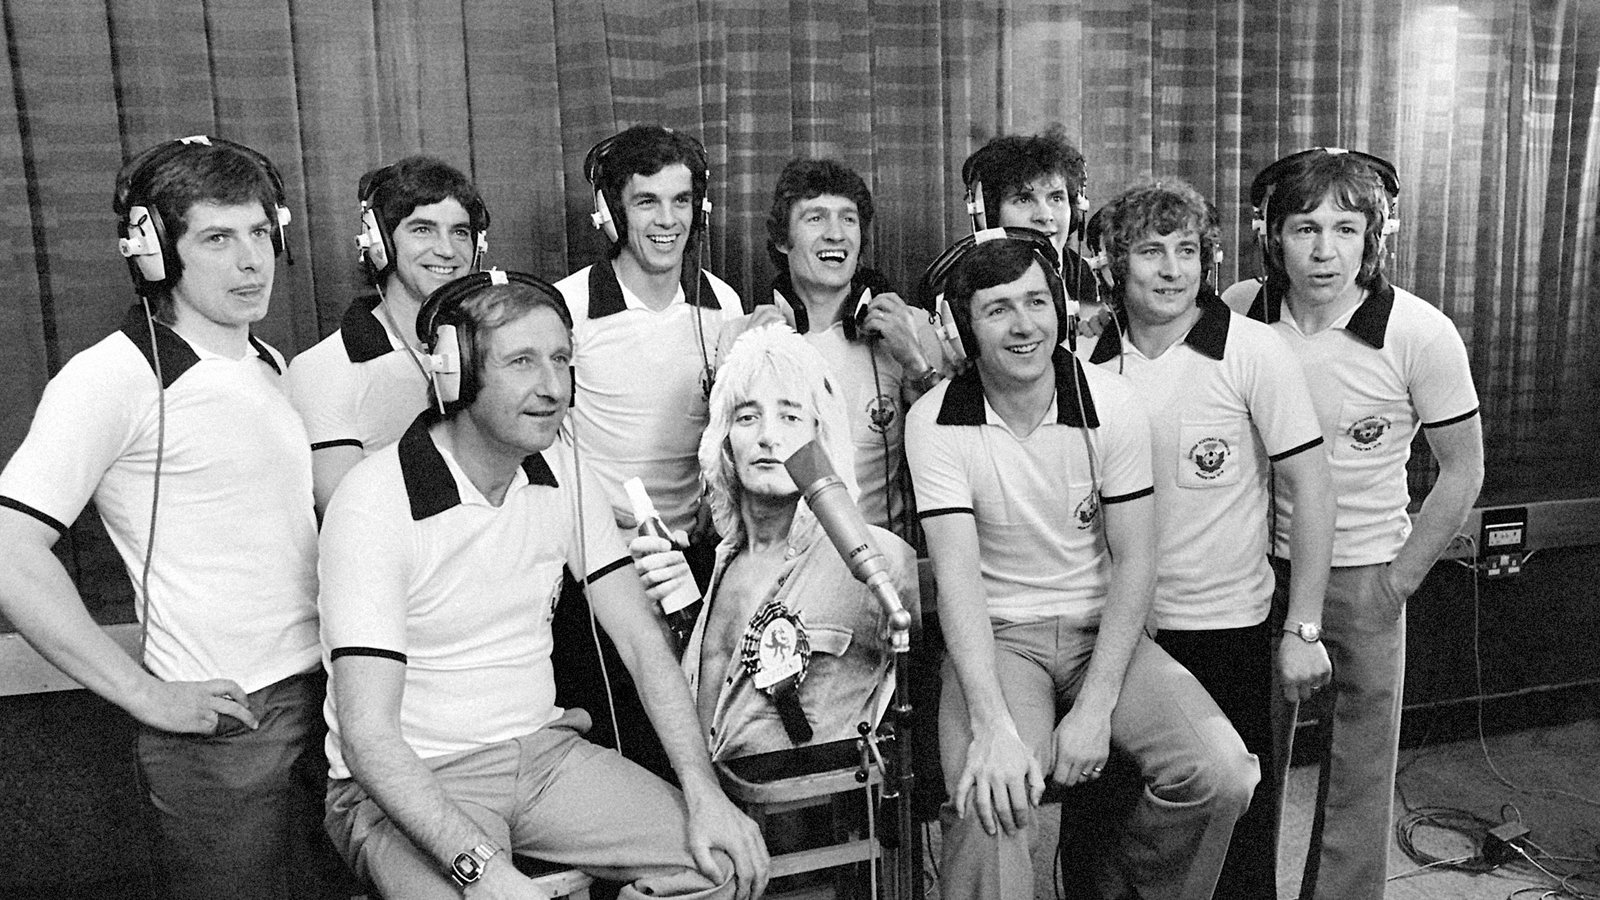 Image - Ally MacLeod (second from left) with Scotland squad and a cardboard cutout of Rod Stewart ahead of 1978 World Cup